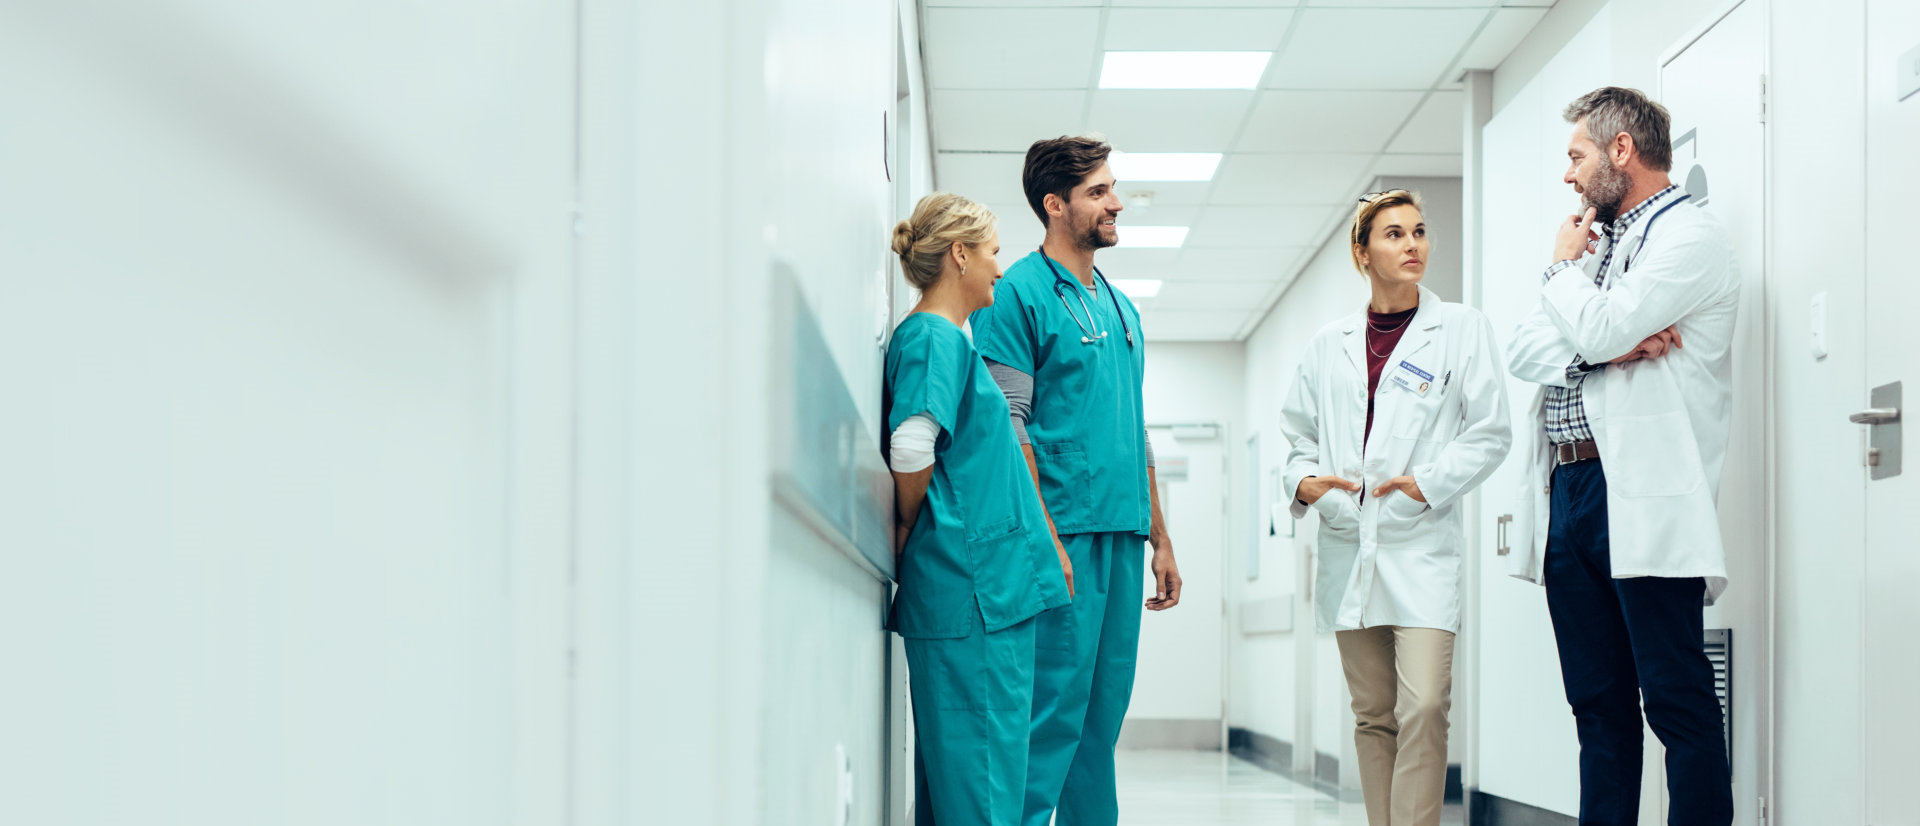 group of medical staff are having a conversation at the hallway of the hospital